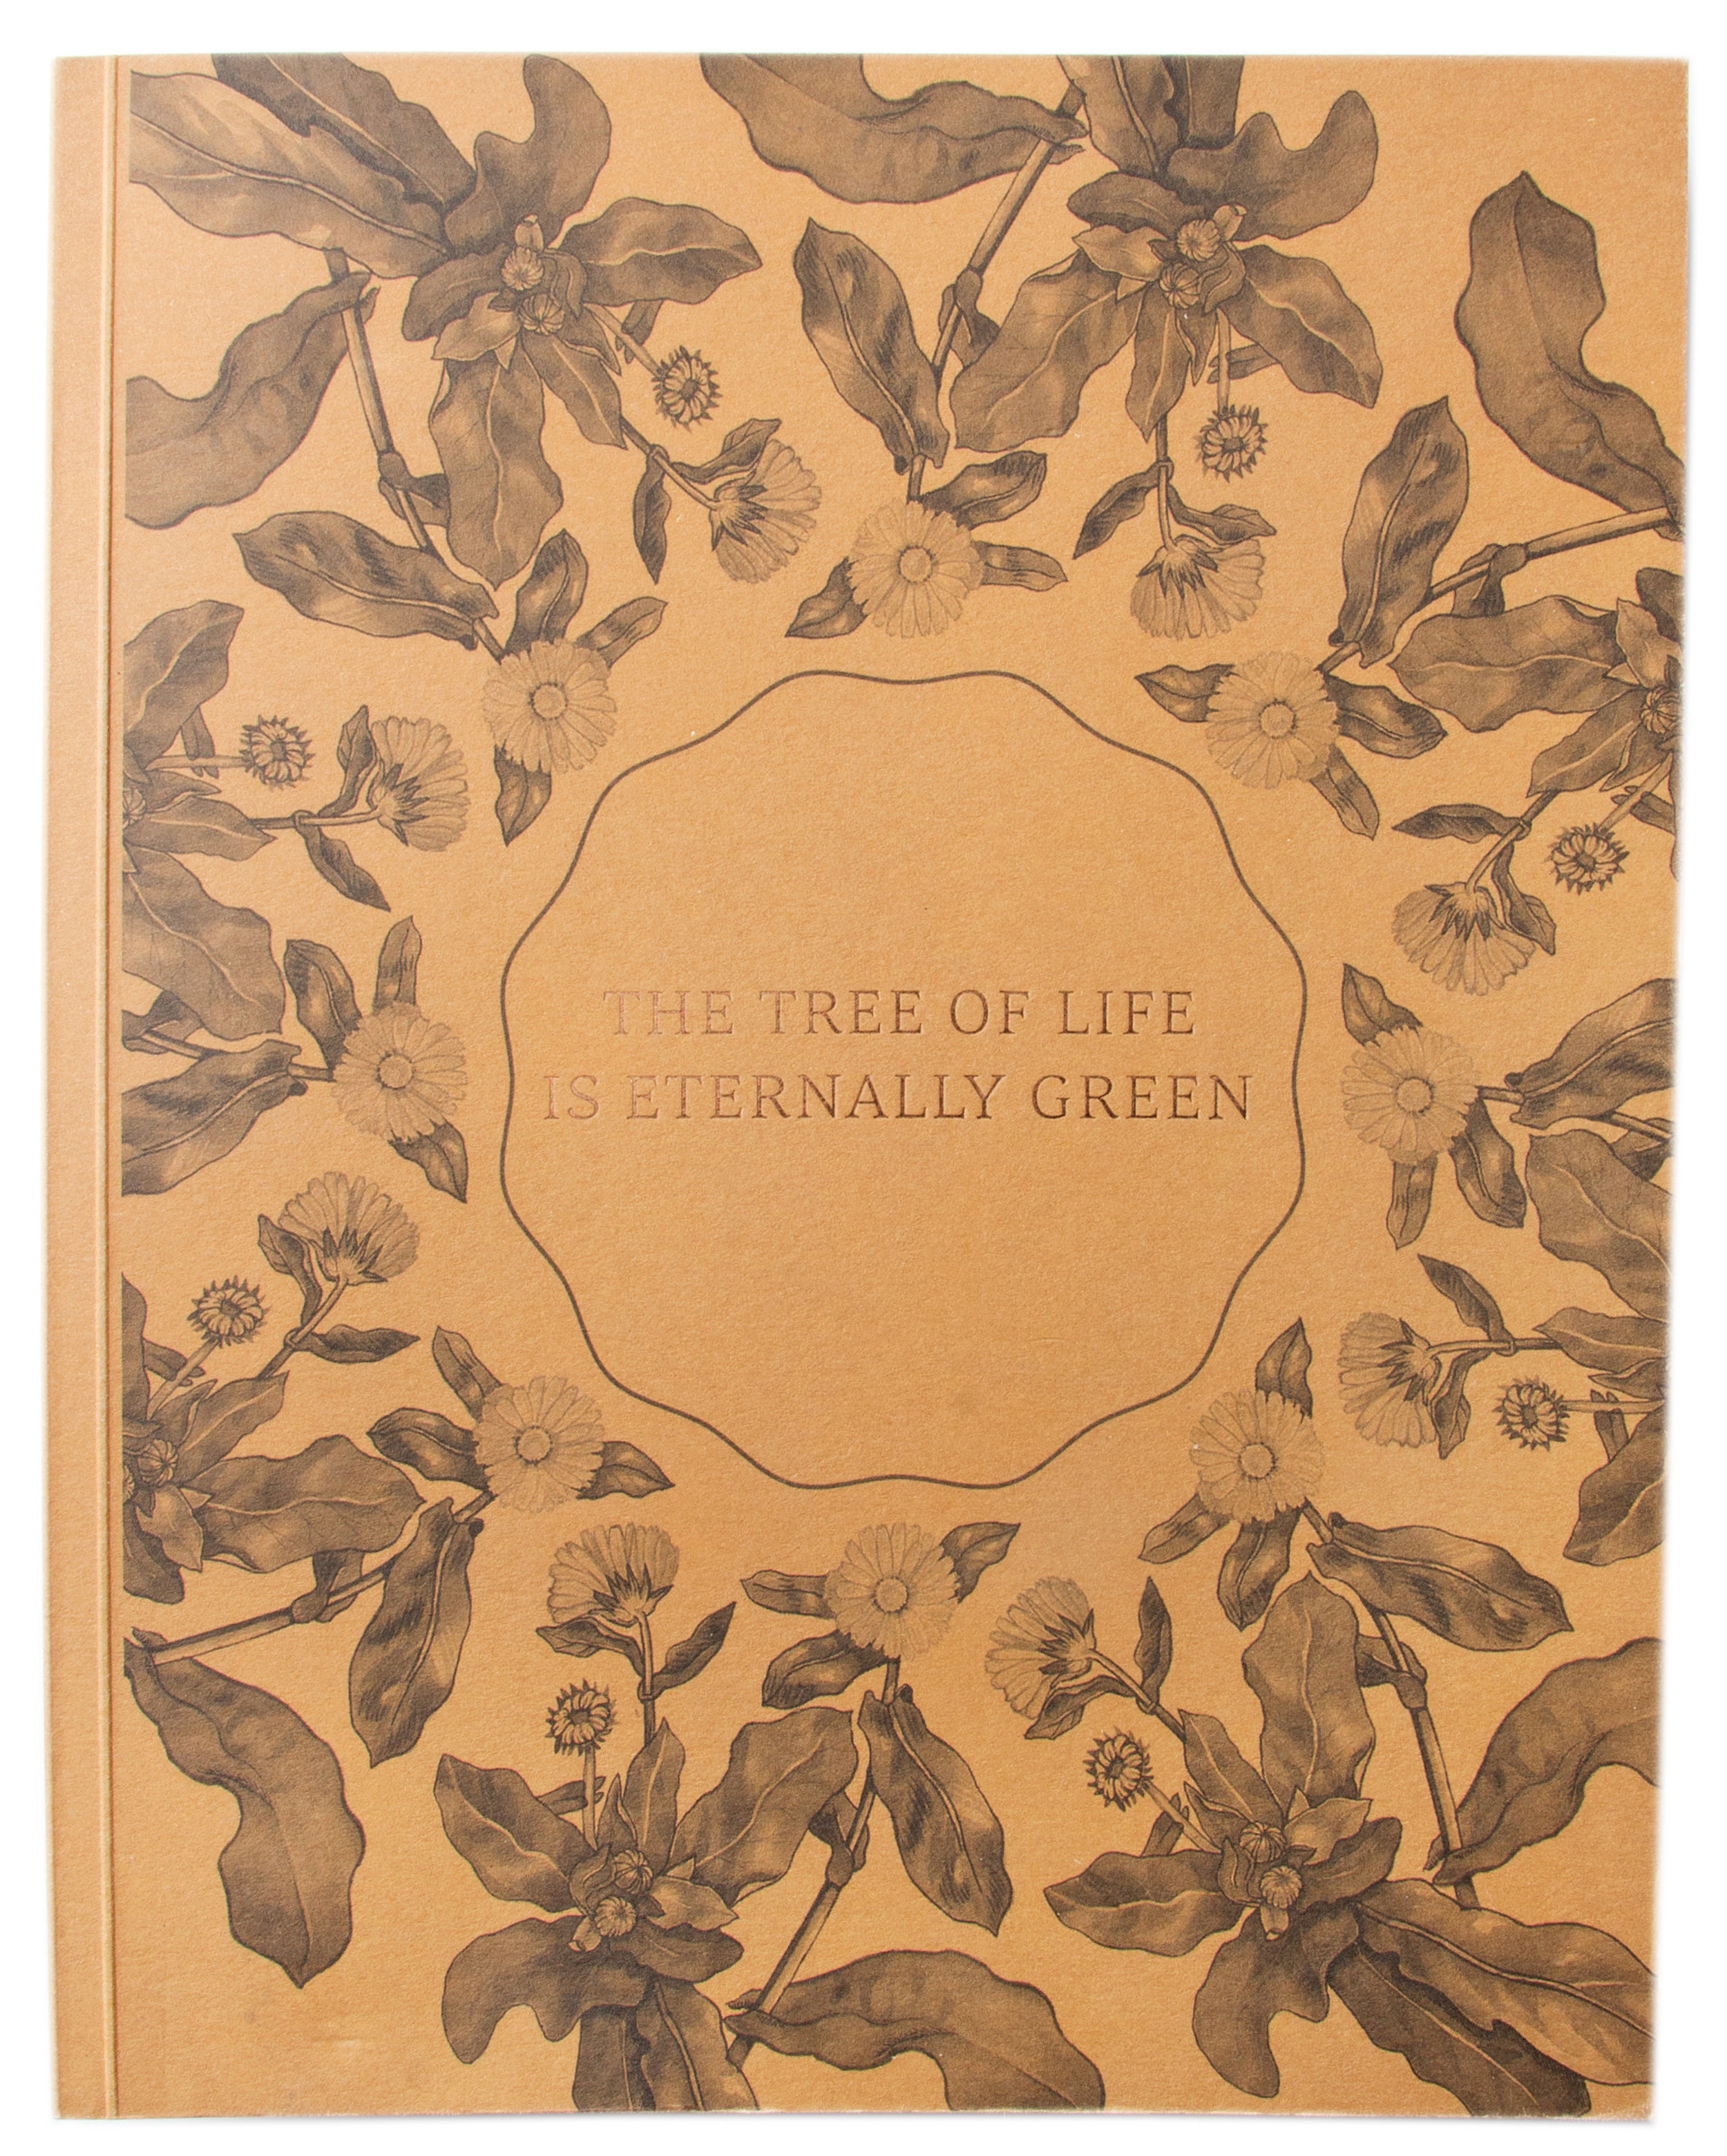 THE TREE OF LIFE IS ETERNALLY GREEN